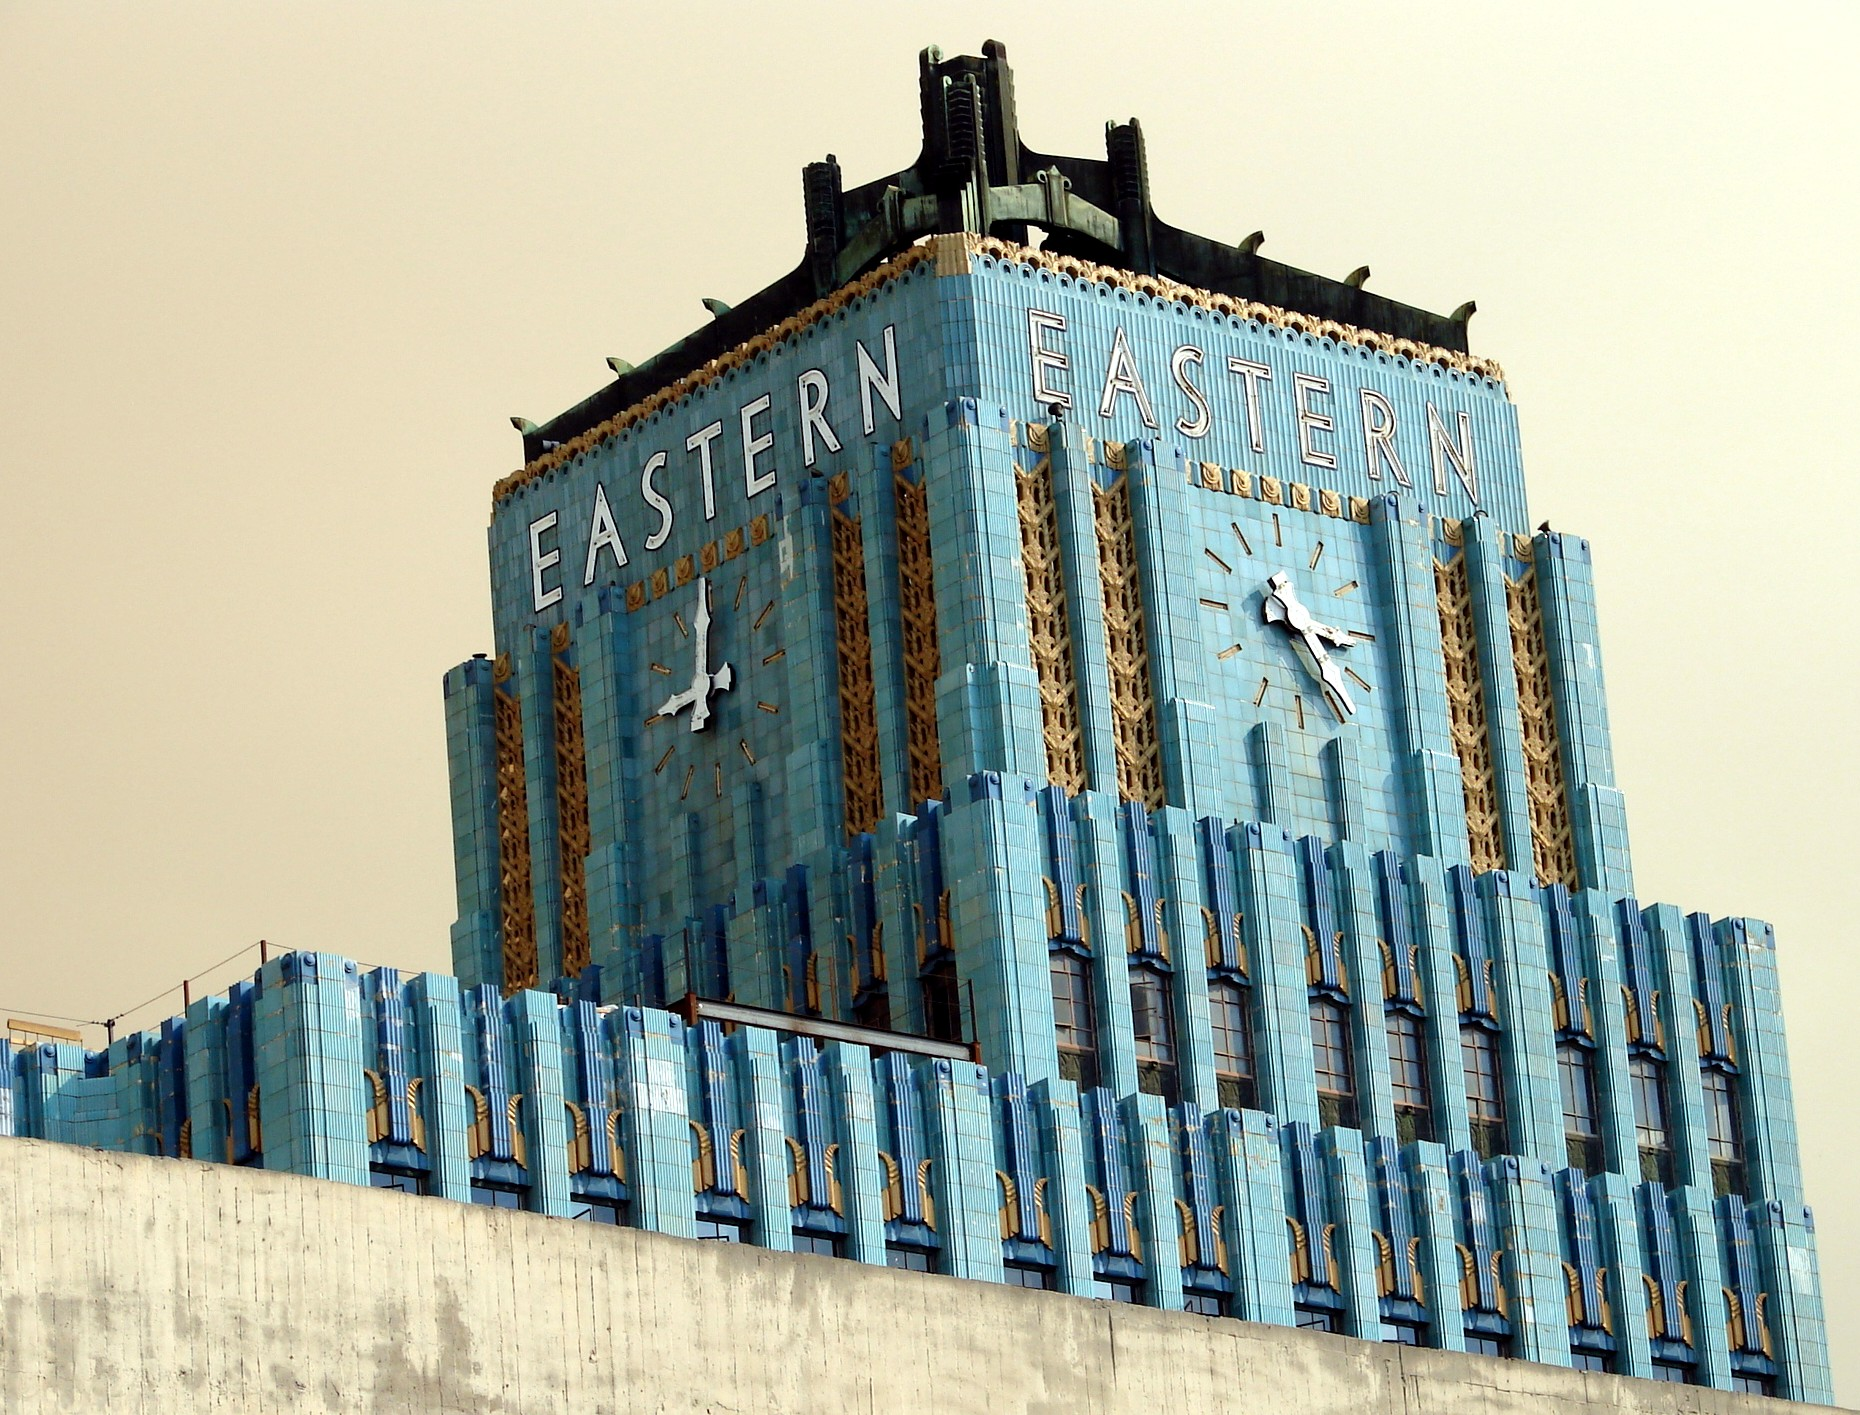 Glazed Terra Cotta Restoration and Repair for Eastern Columbia Building